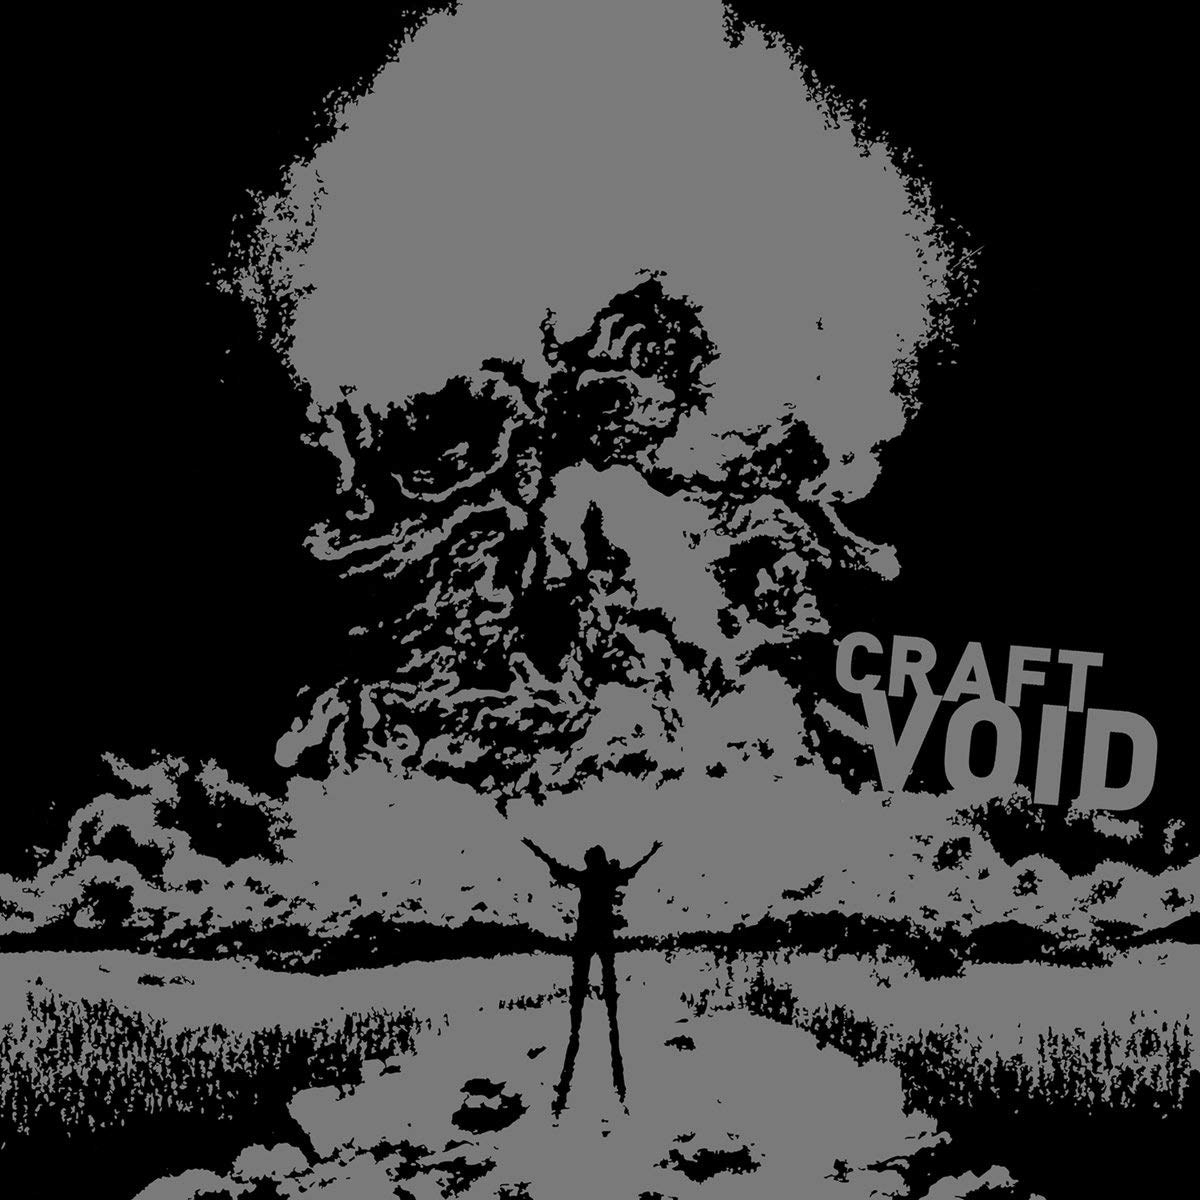 Review for Craft - Void